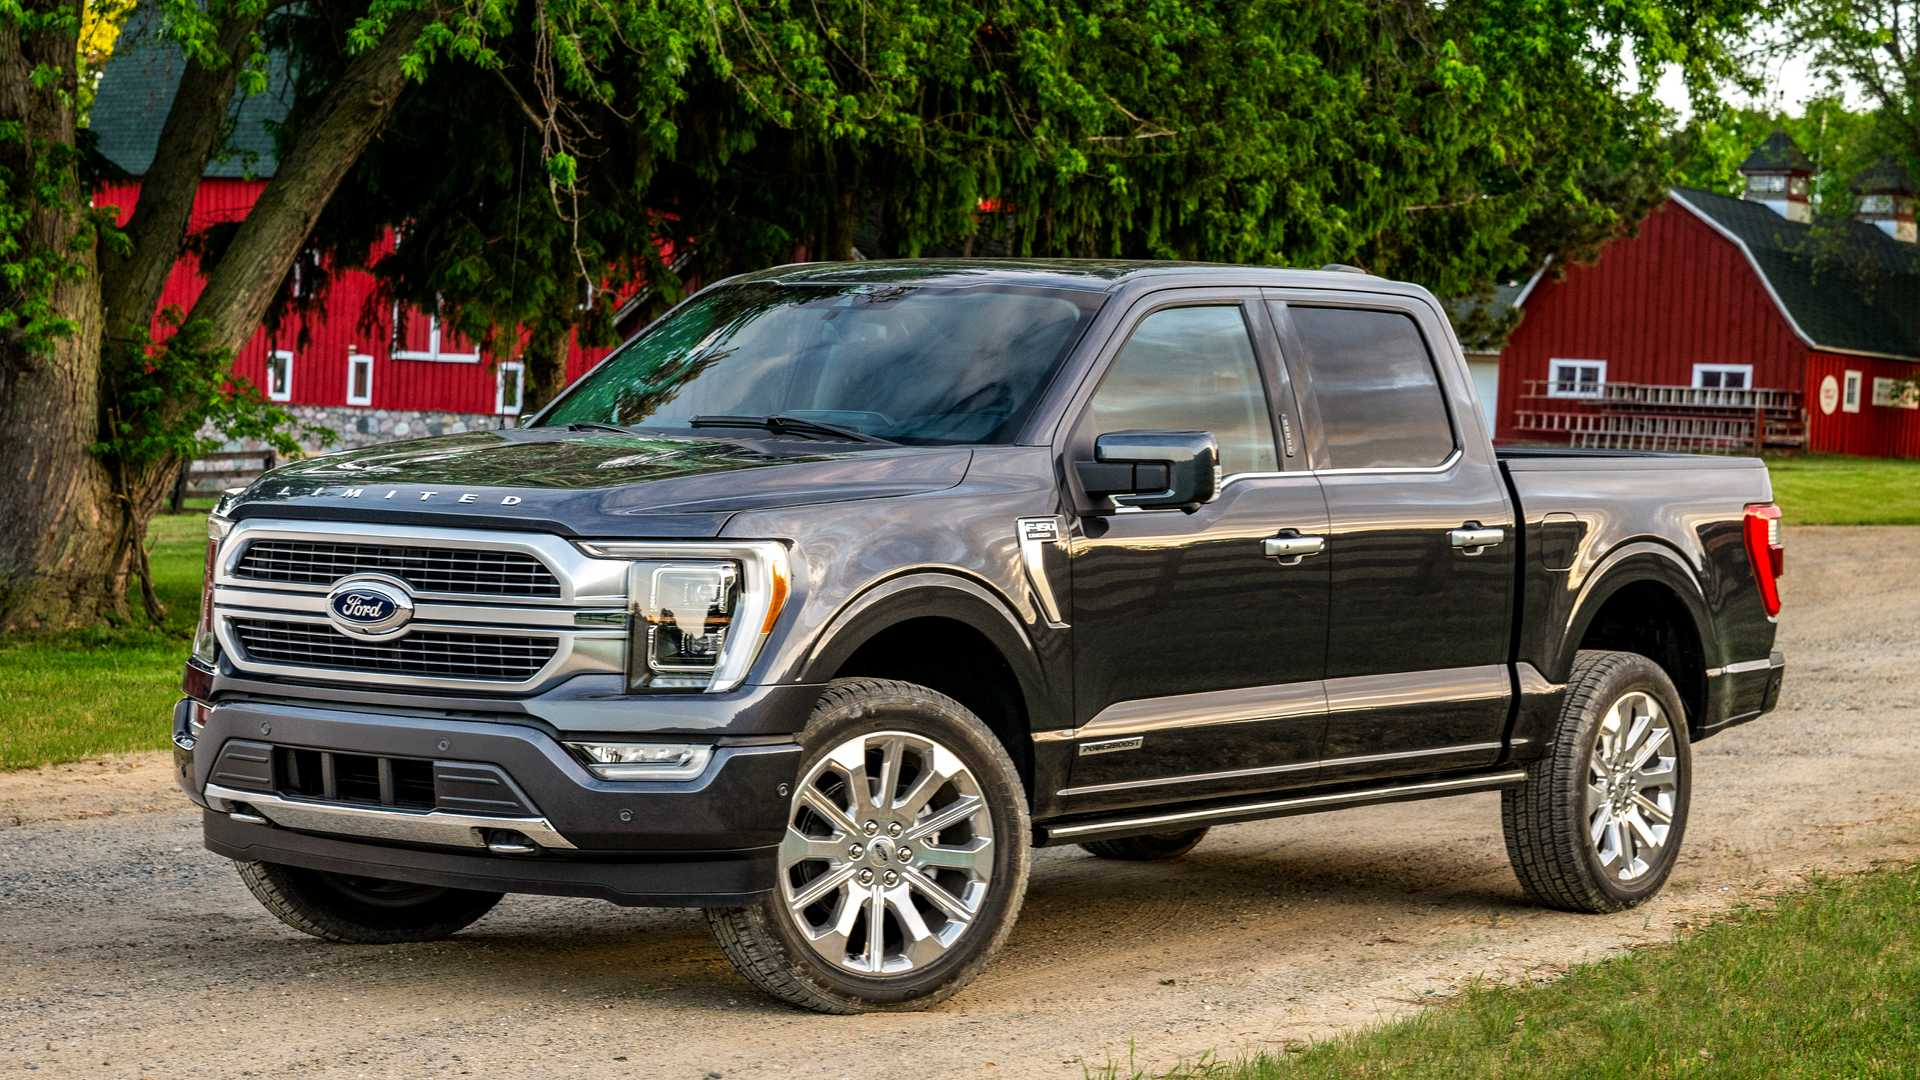 2021 Ford F 150 Redesign Revealed With Hybrid Version Clever Features 1920x1080